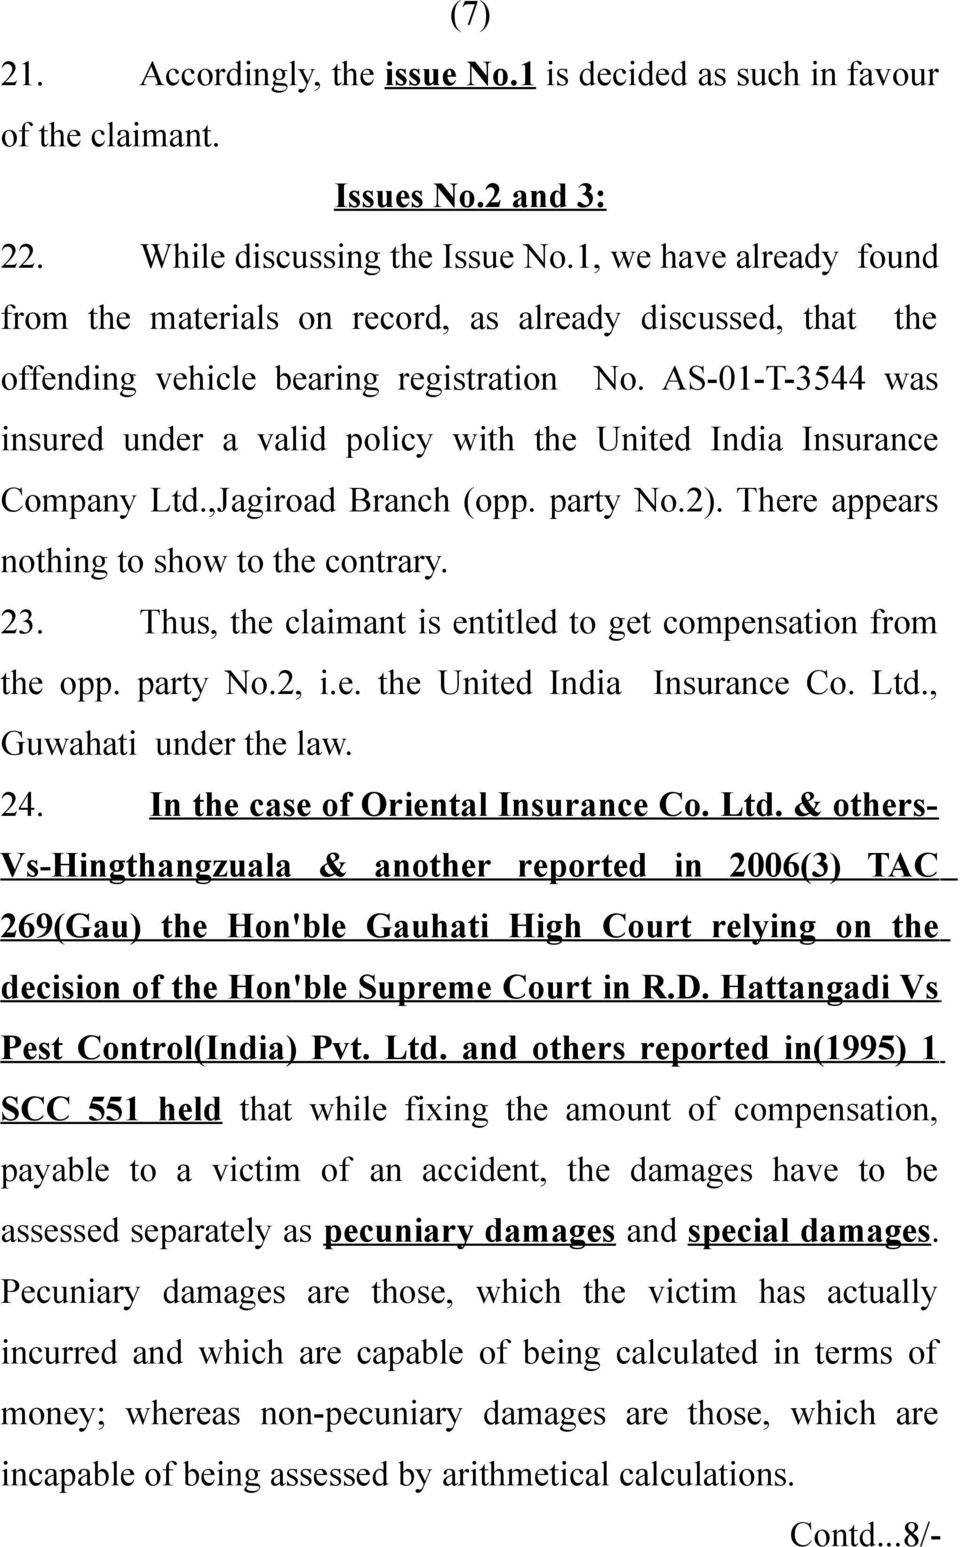 AS-01-T-3544 was insured under a valid policy with the United India Insurance Company Ltd.,Jagiroad Branch (opp. party No.2). There appears nothing to show to the contrary. 23.